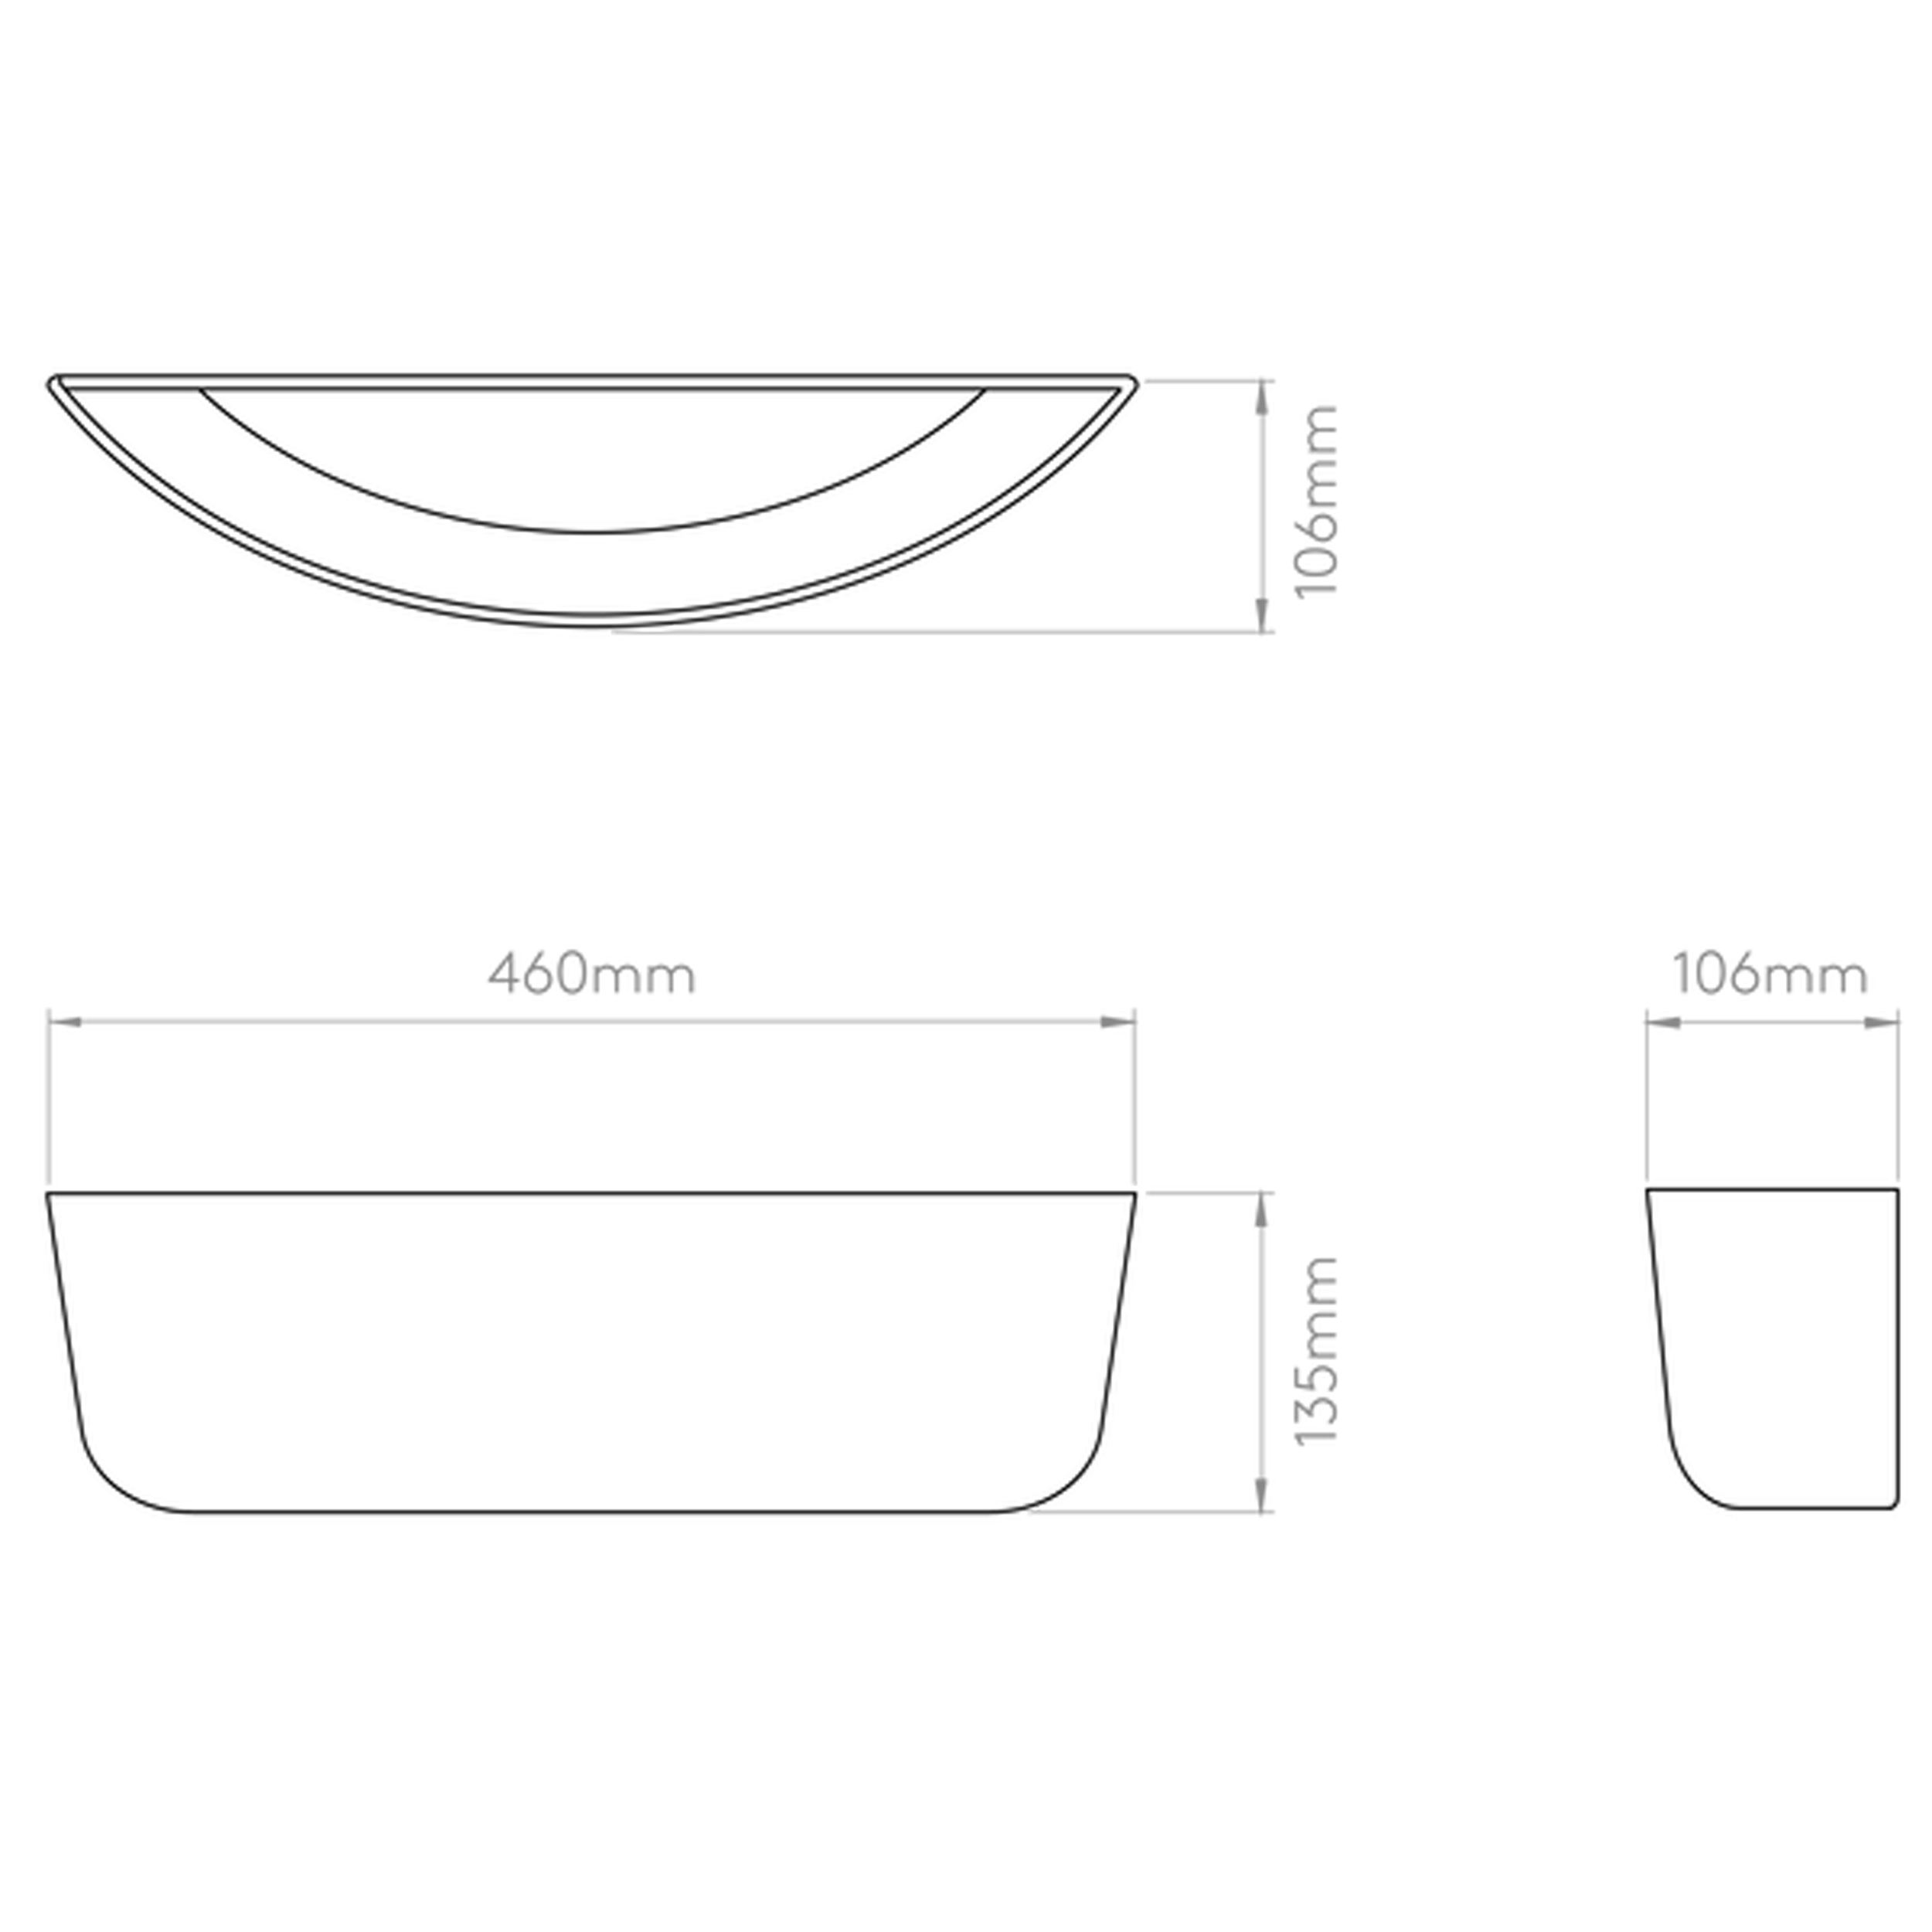 Astro Gosford 460 Wall Light Line Drawing